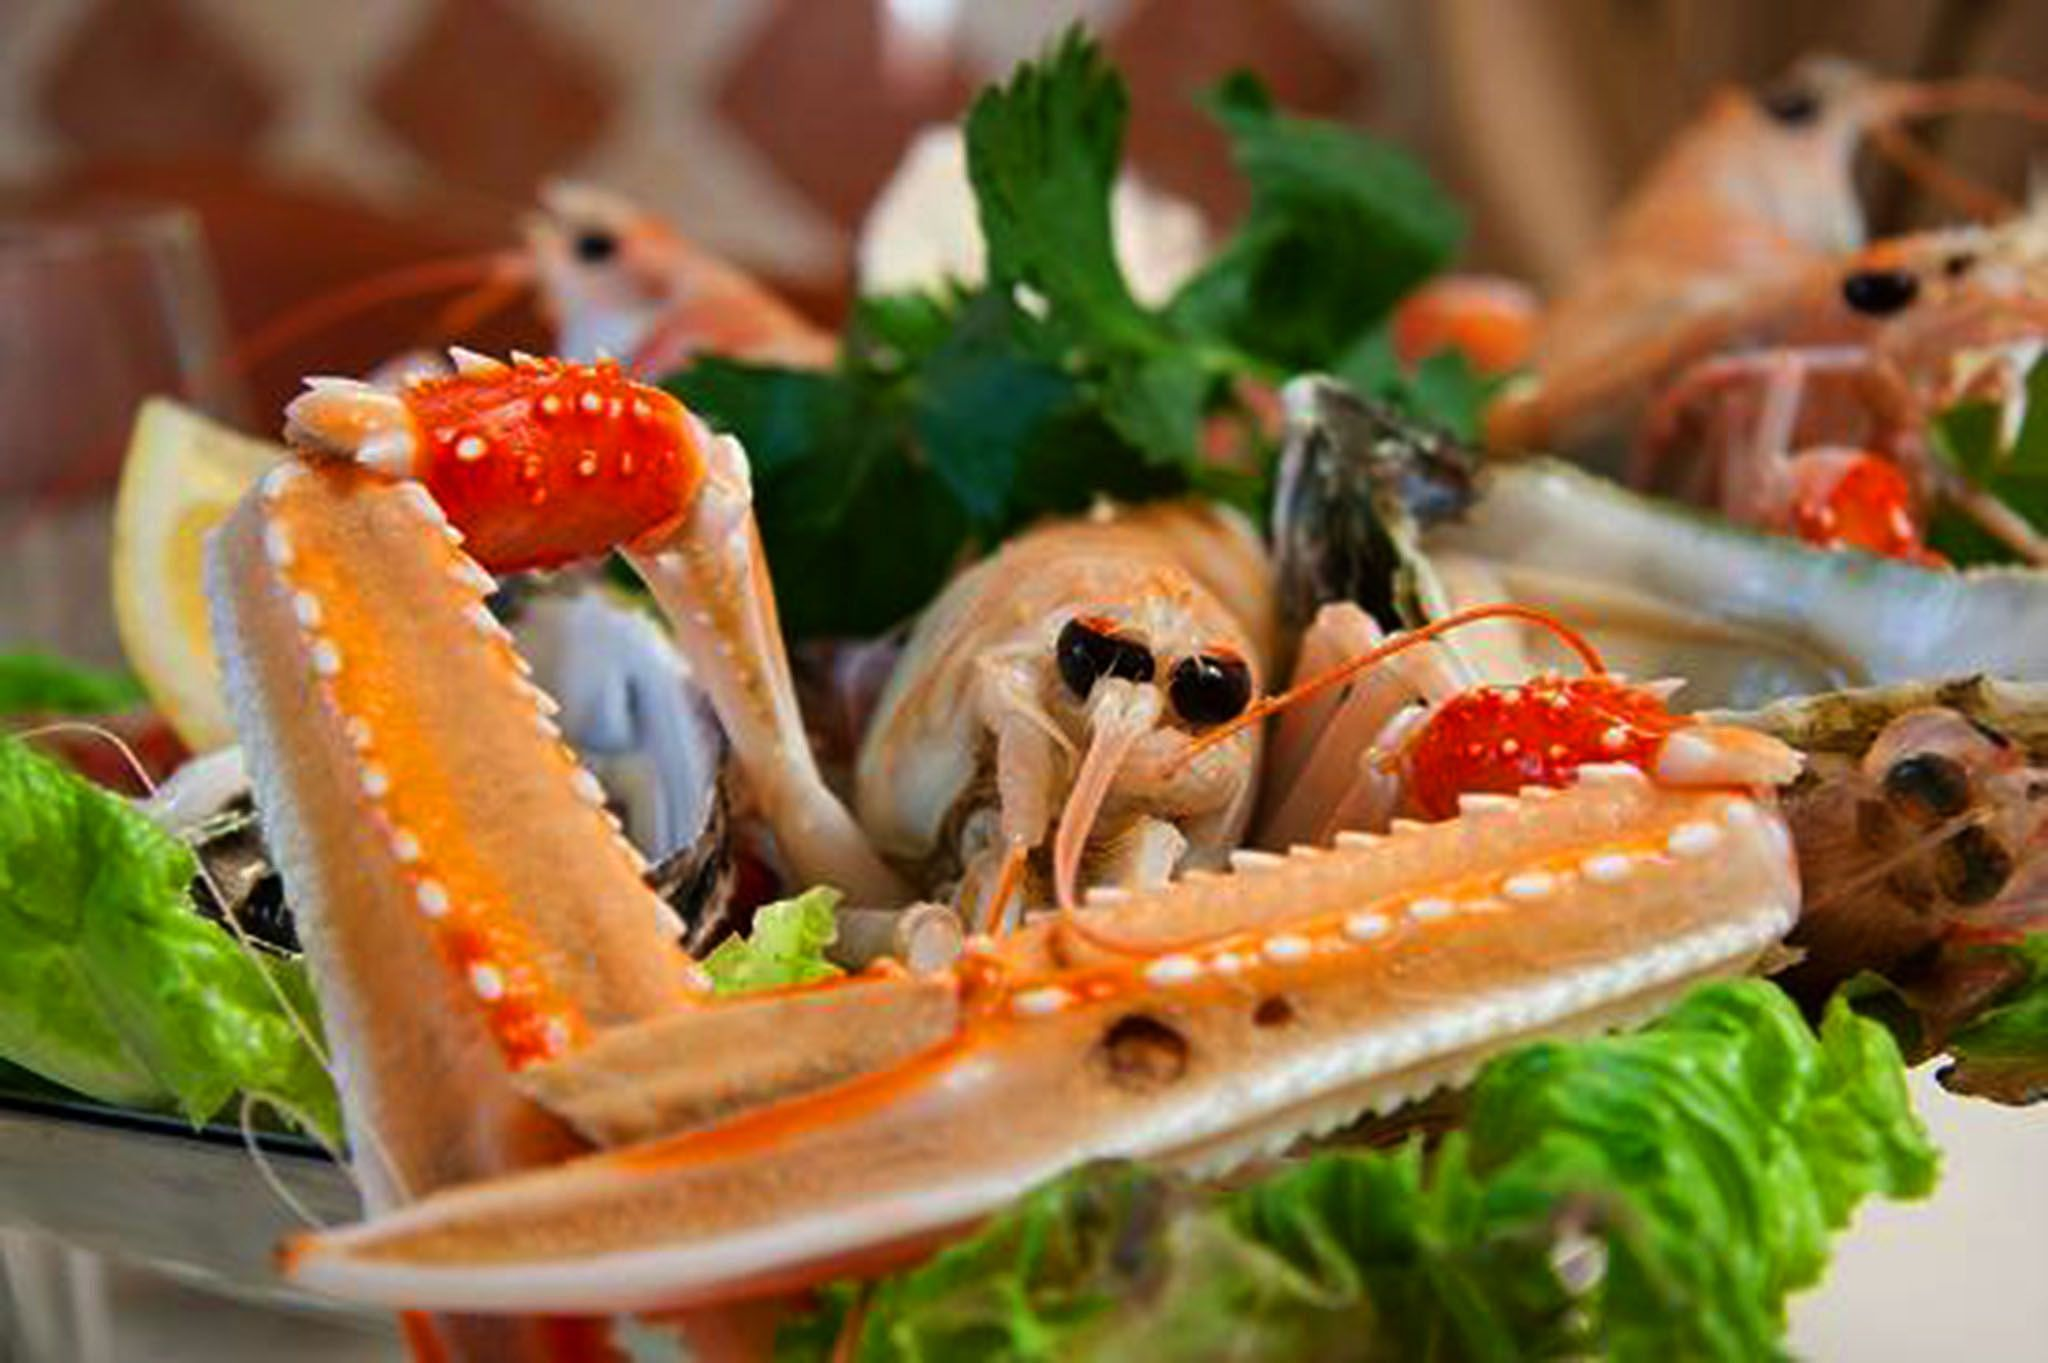 Seafood was a rare and expensive delicacy in the Renaissance.